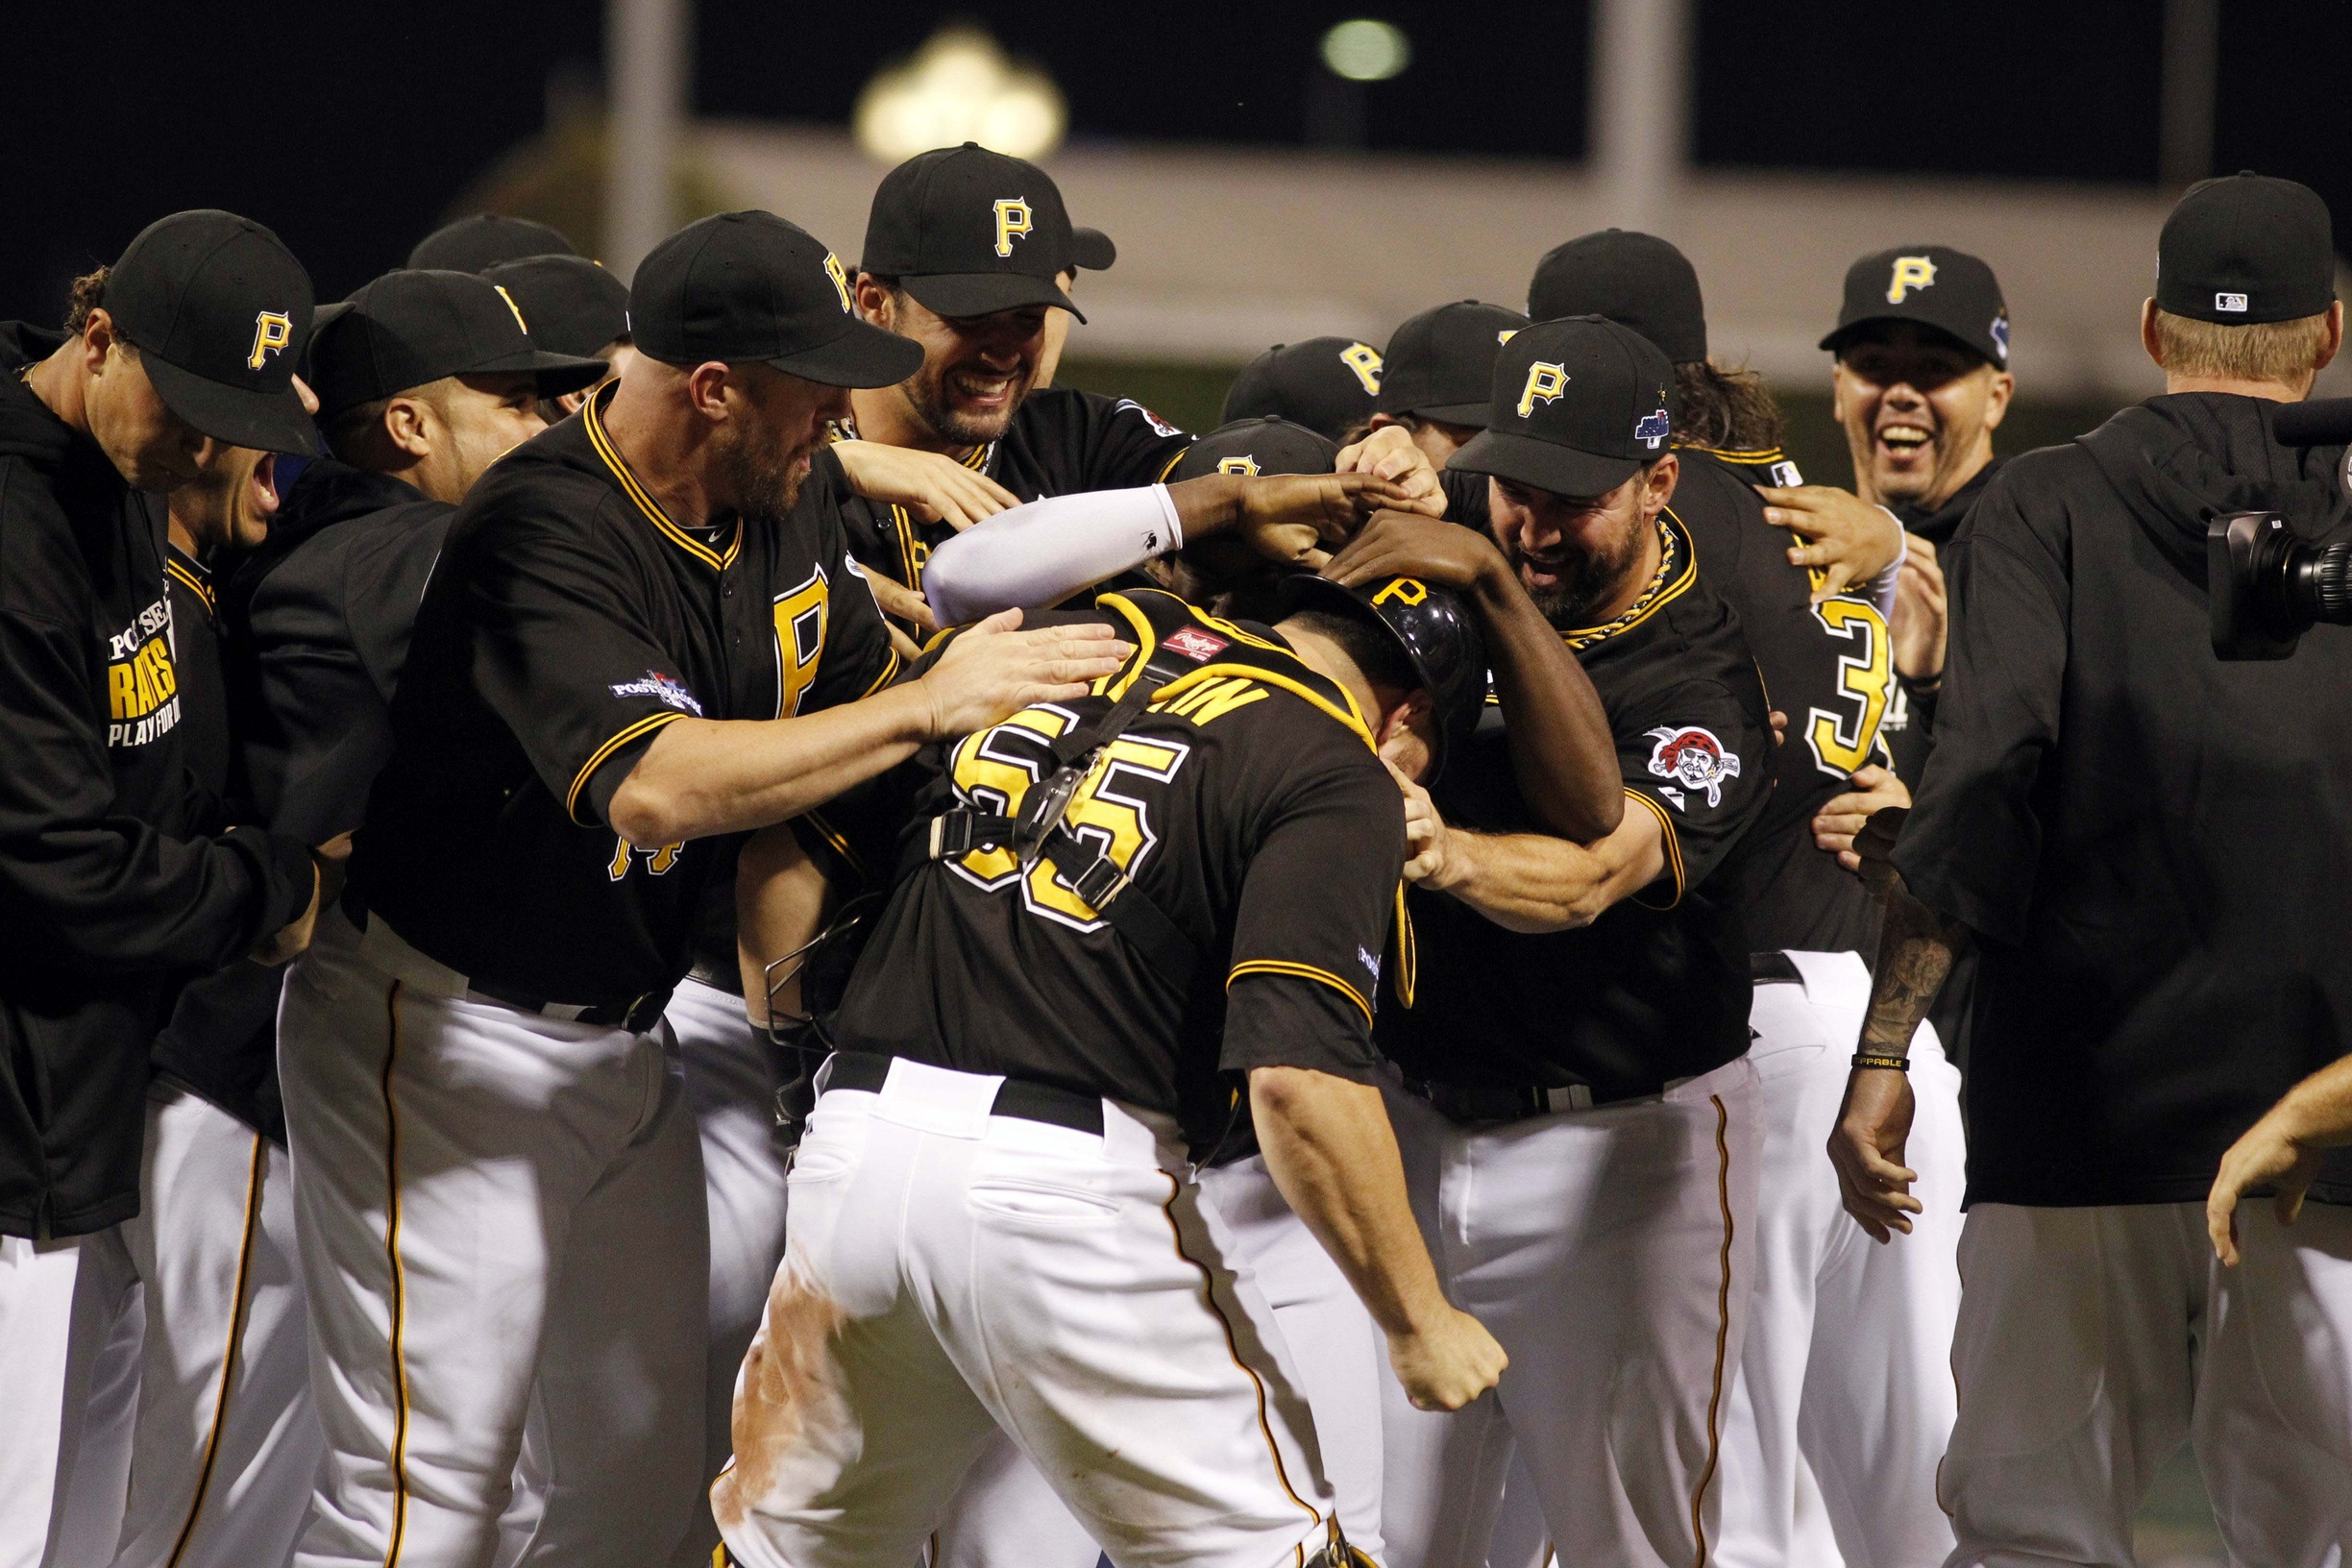 pittsburgh pirates 2448x1632